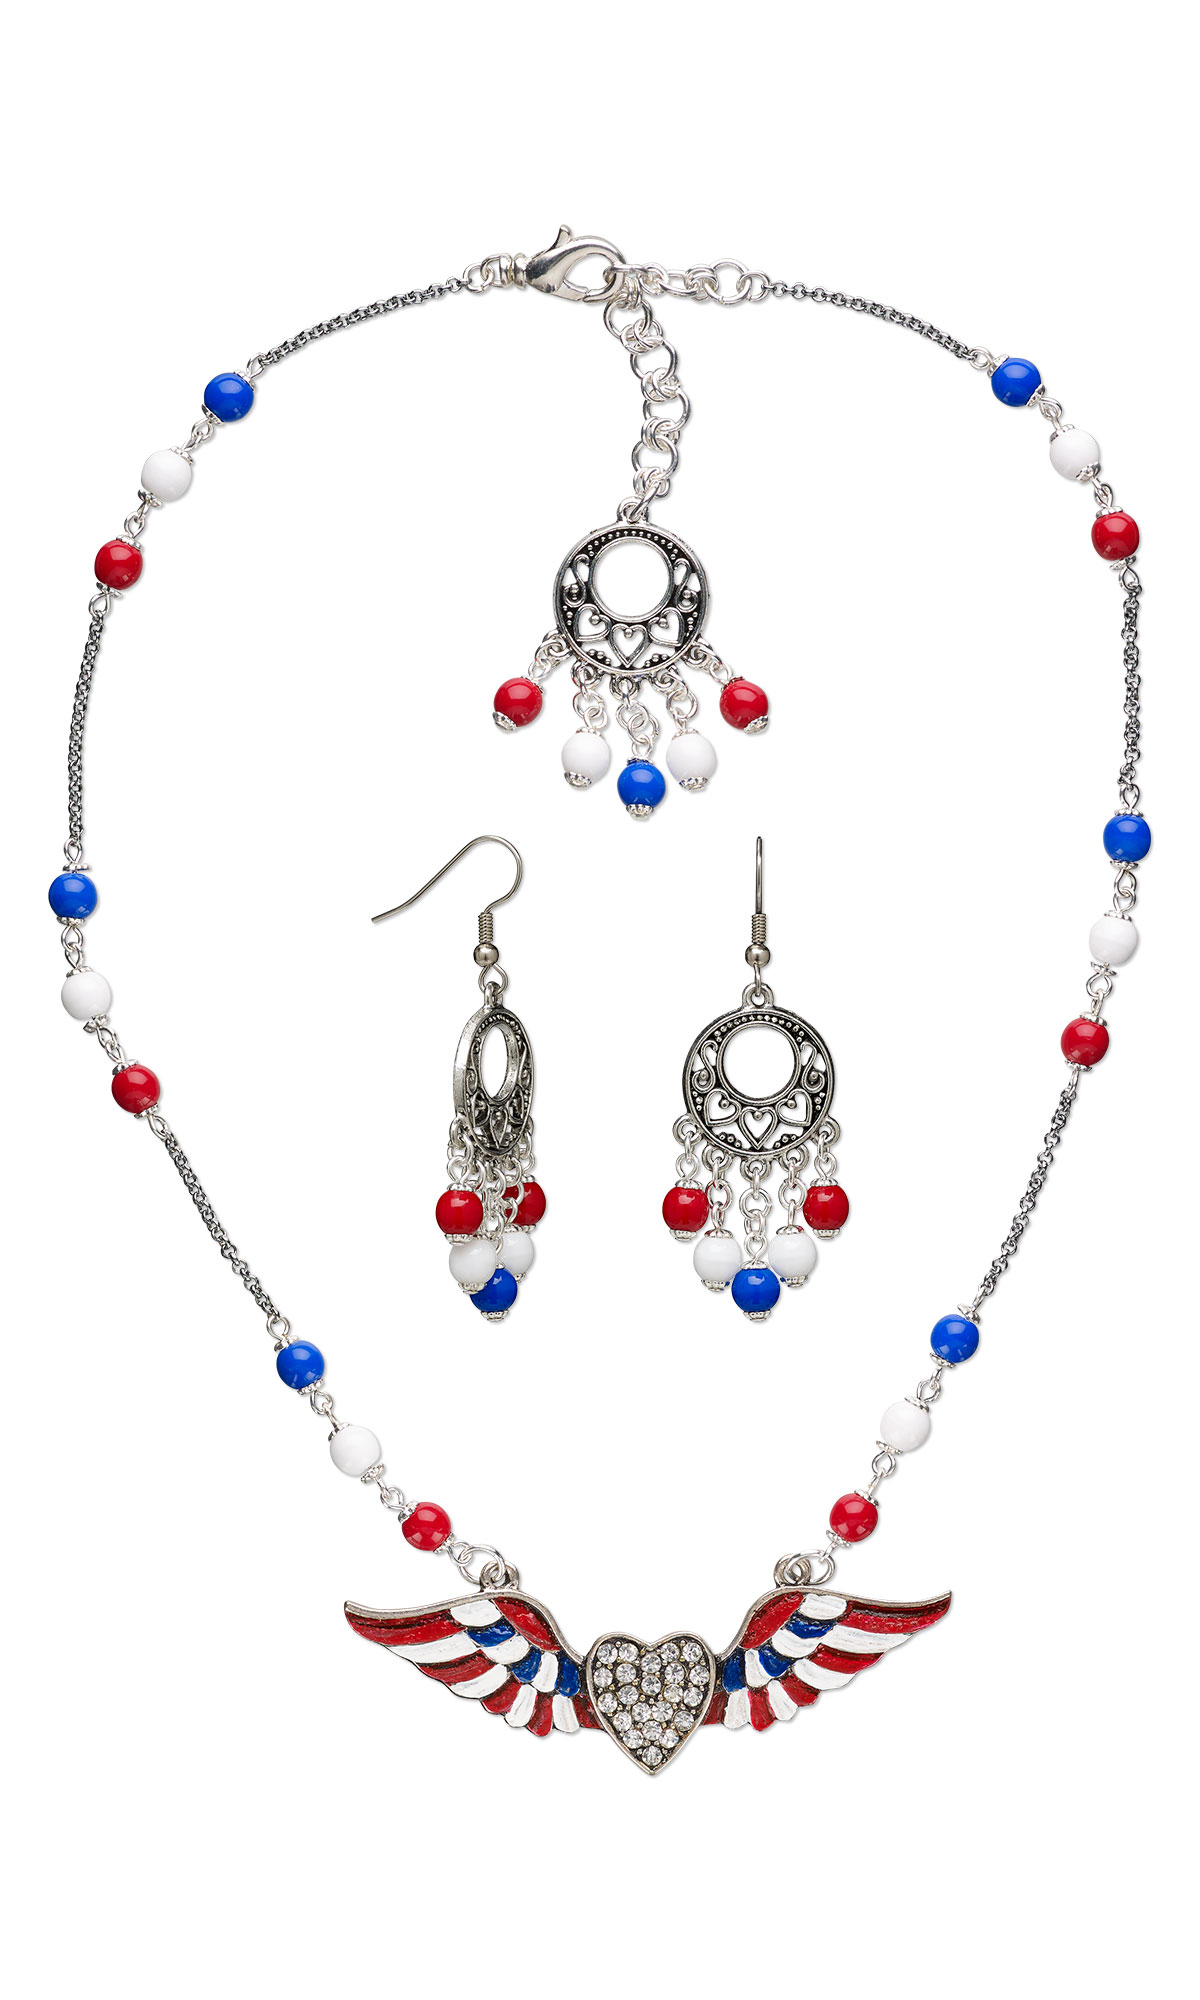 Jewelry design single strand necklace and earring set for Pebeo vitrail glass paint instructions